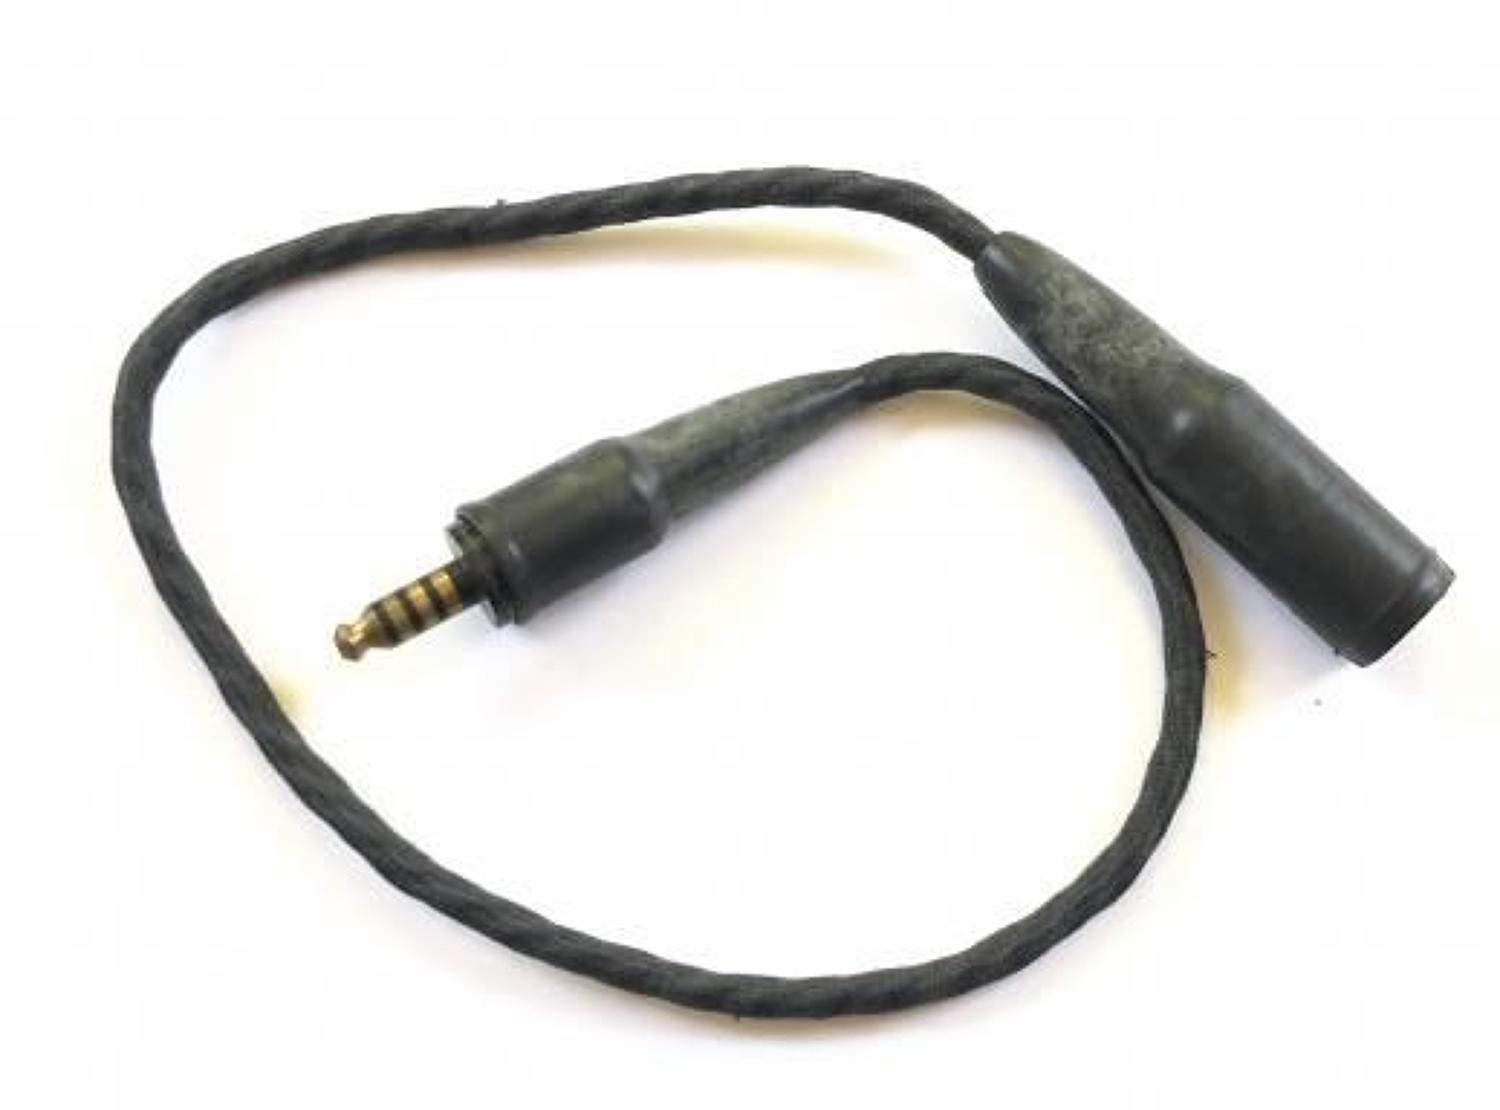 RAF Cold War Period Aircrew Cable Extension.